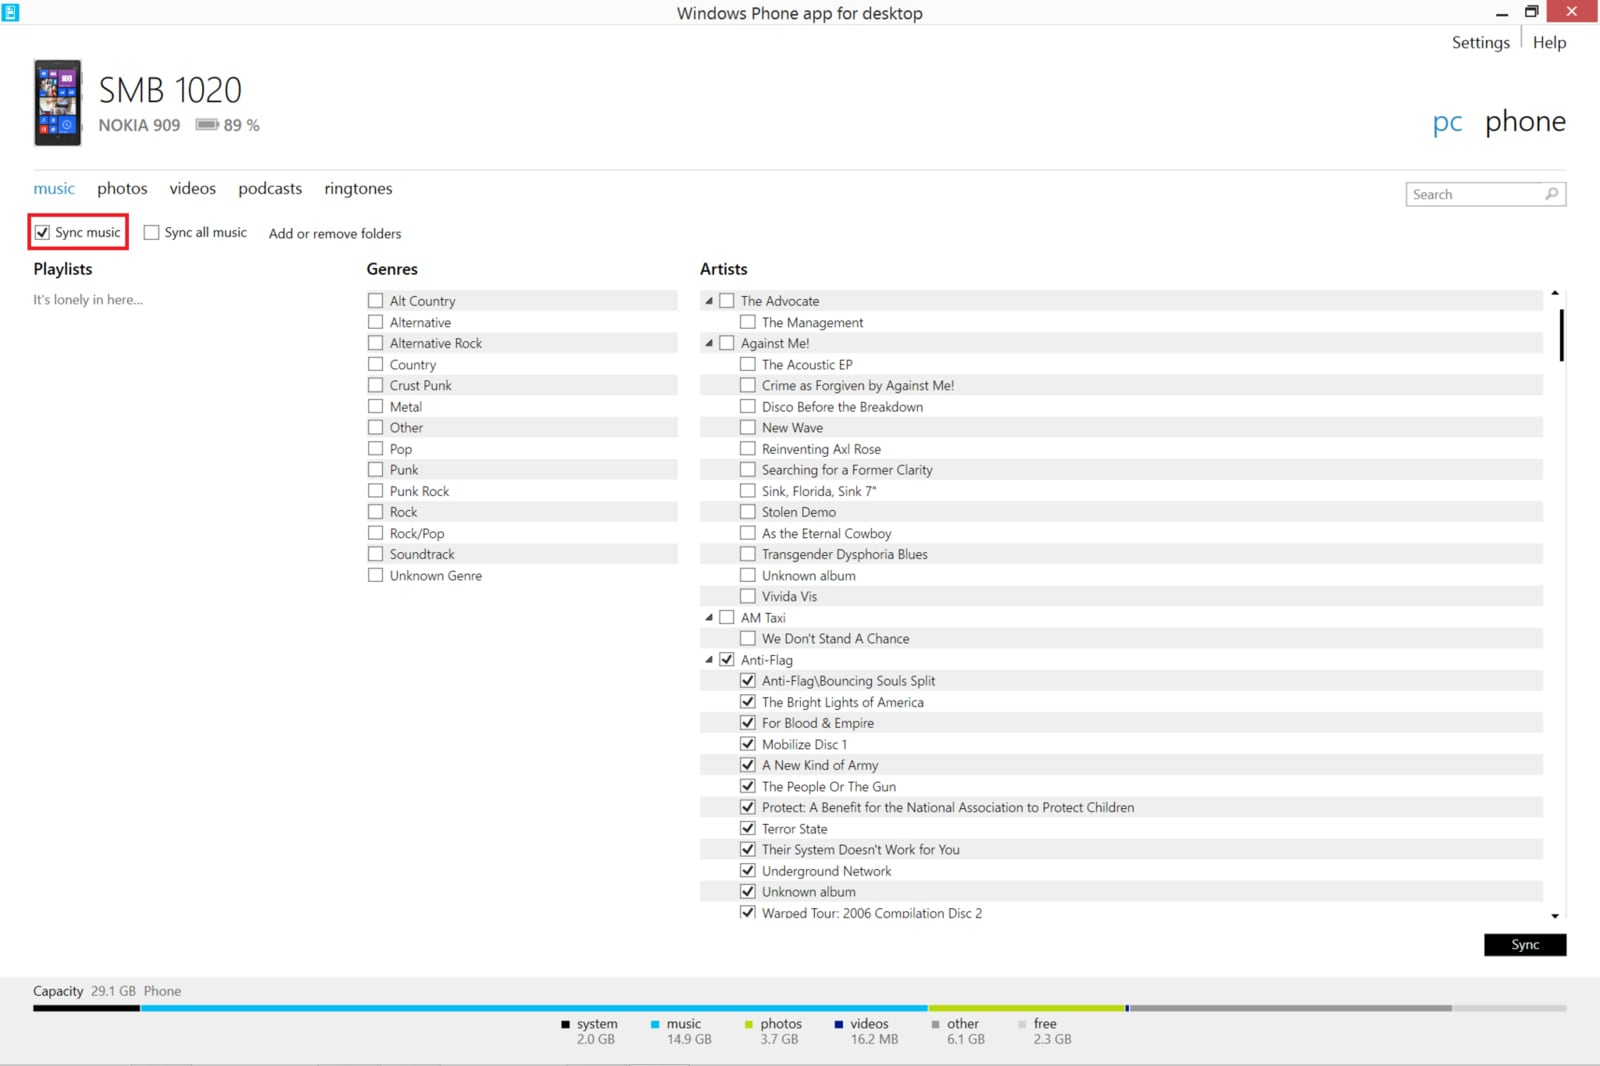 Also check the boxes next to the genres bands and or albums that